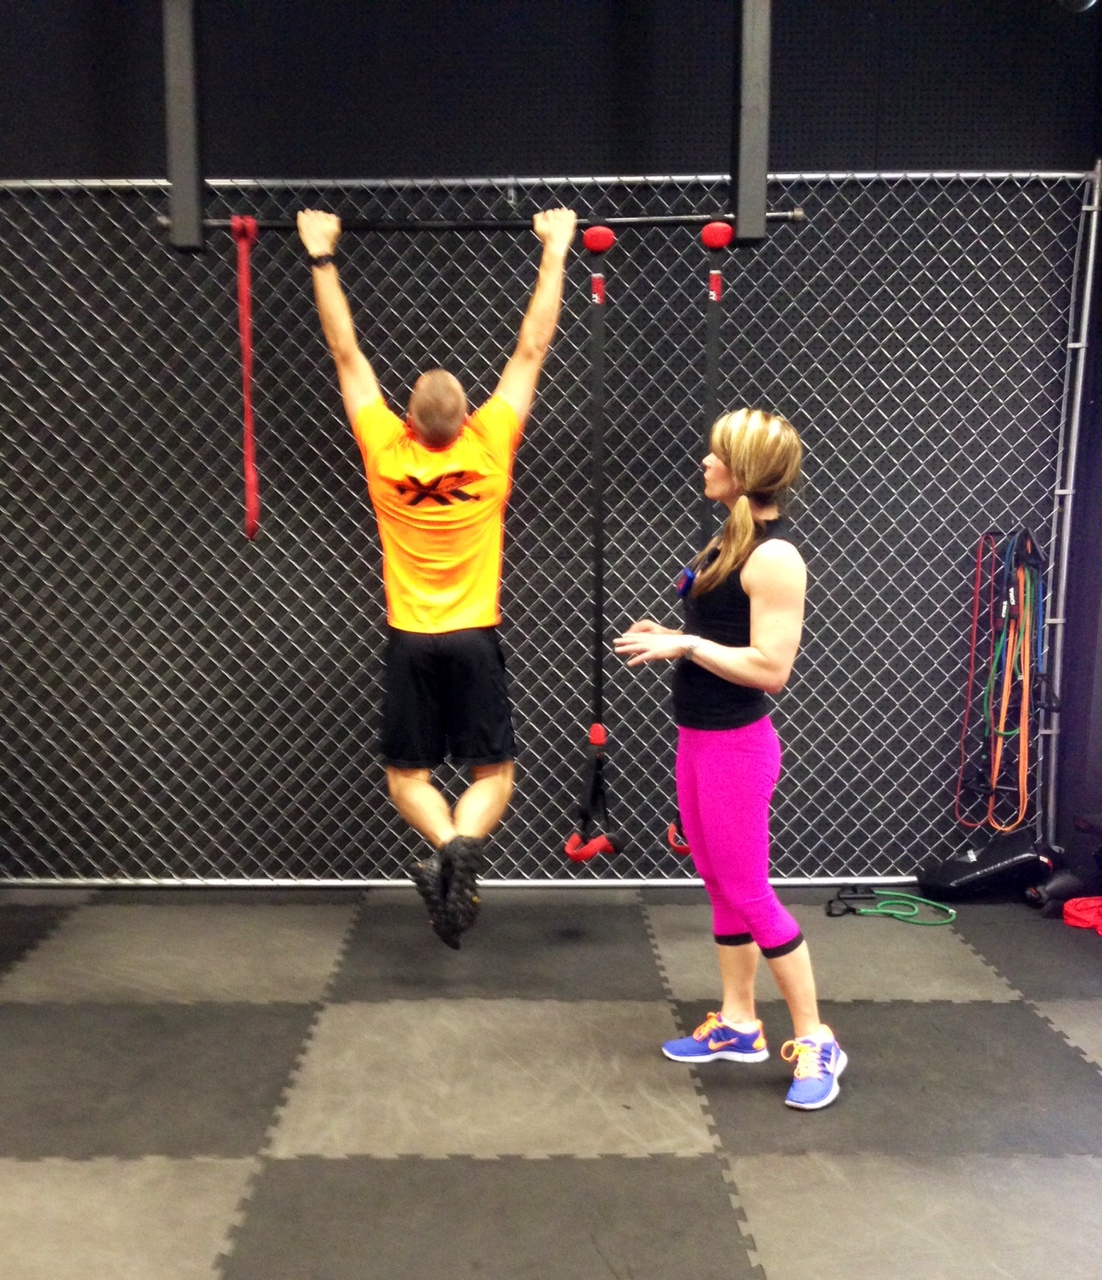 Chin Up Bar Calgary: Burpees And Box Jumps